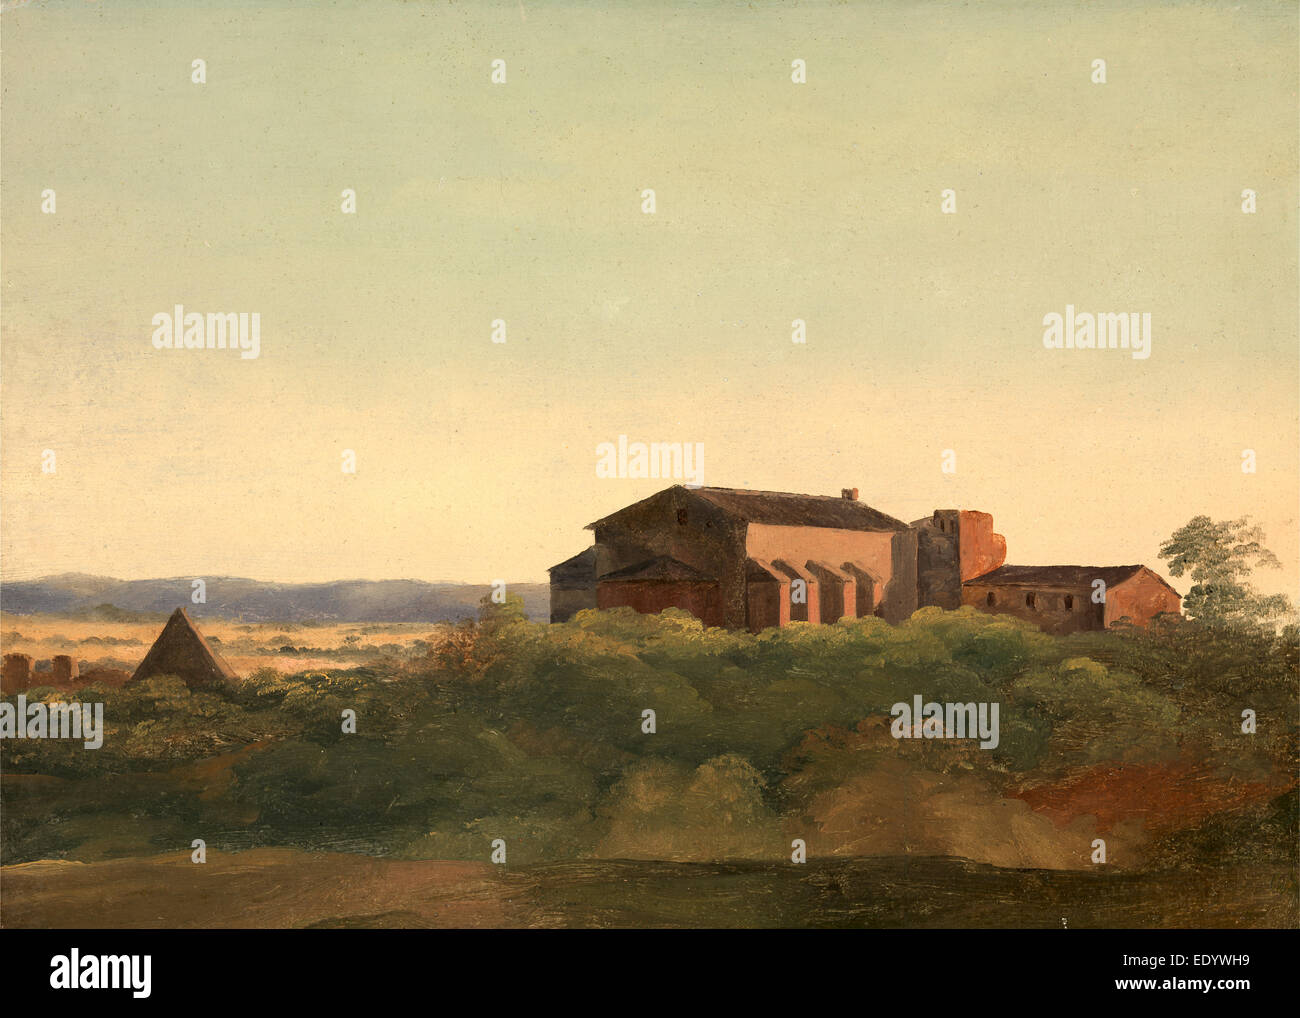 A View of the Church of S. Sabina and the Pyramid of Cestius, Rome, Charles Lock Eastlake, 1793-1865, British - Stock Image